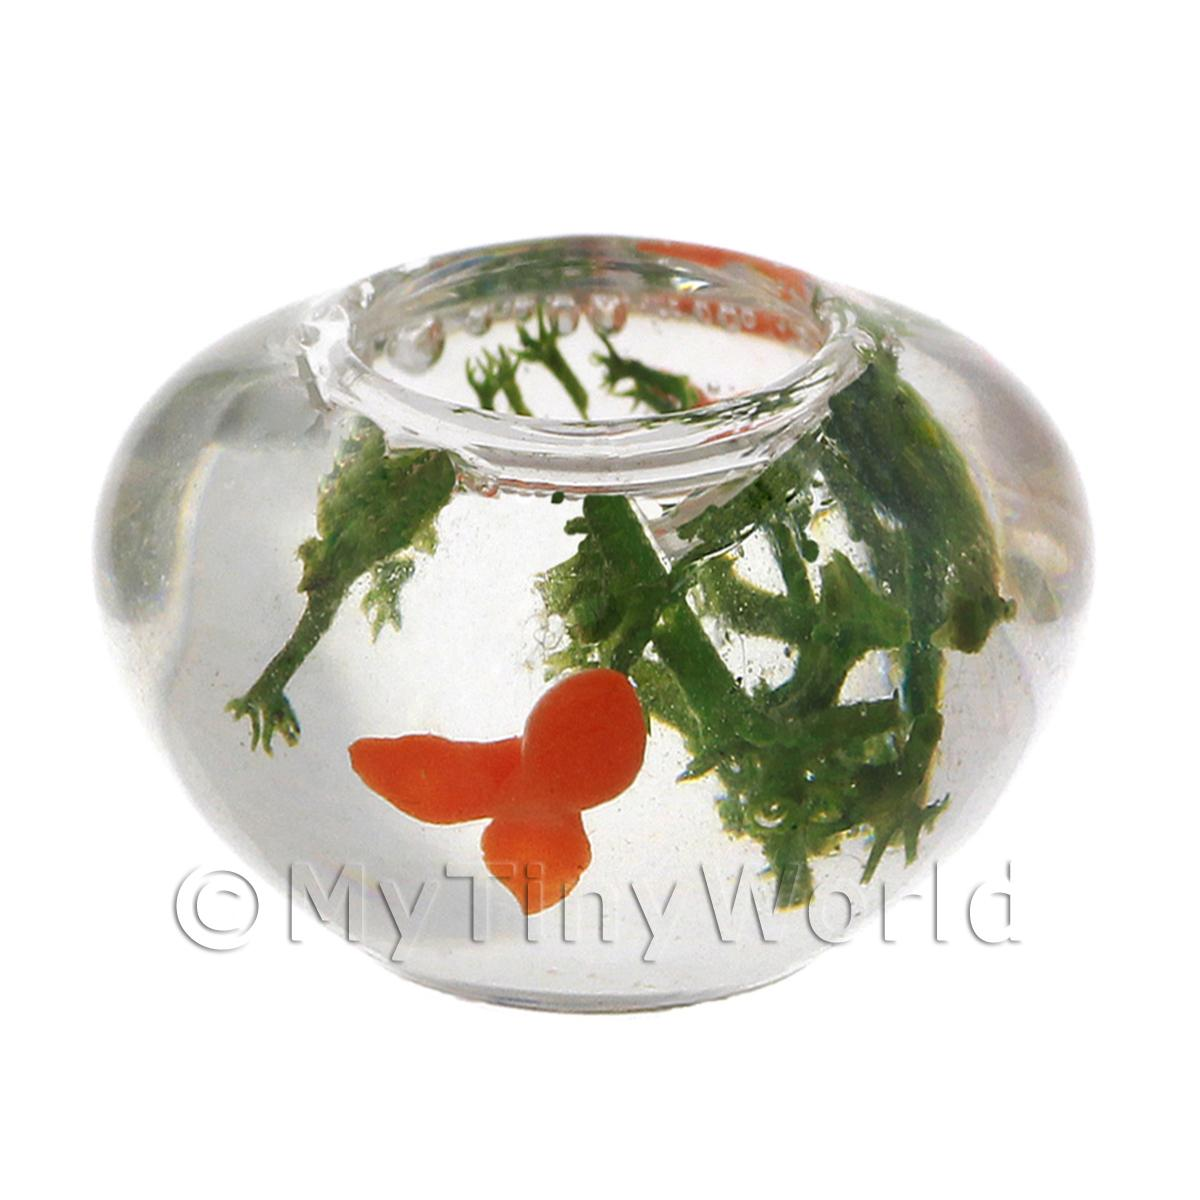 Dolls House Miniature Gold Fish In Classic Glass Bowl